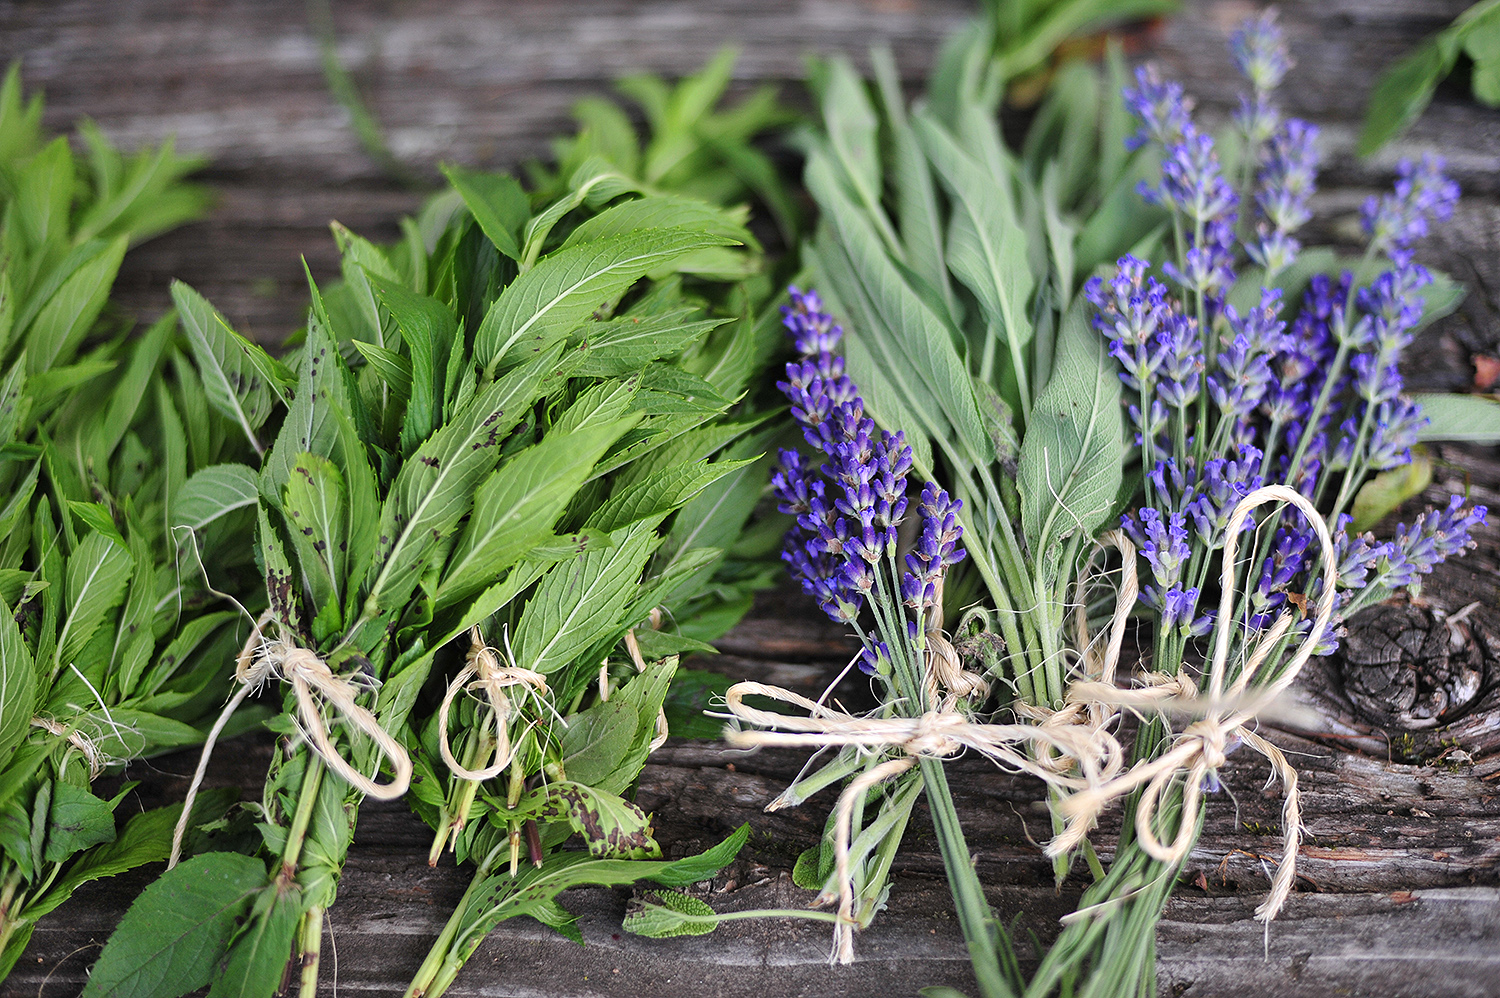 Mint, sage and lavender also are grown at the farm and sold at the market.